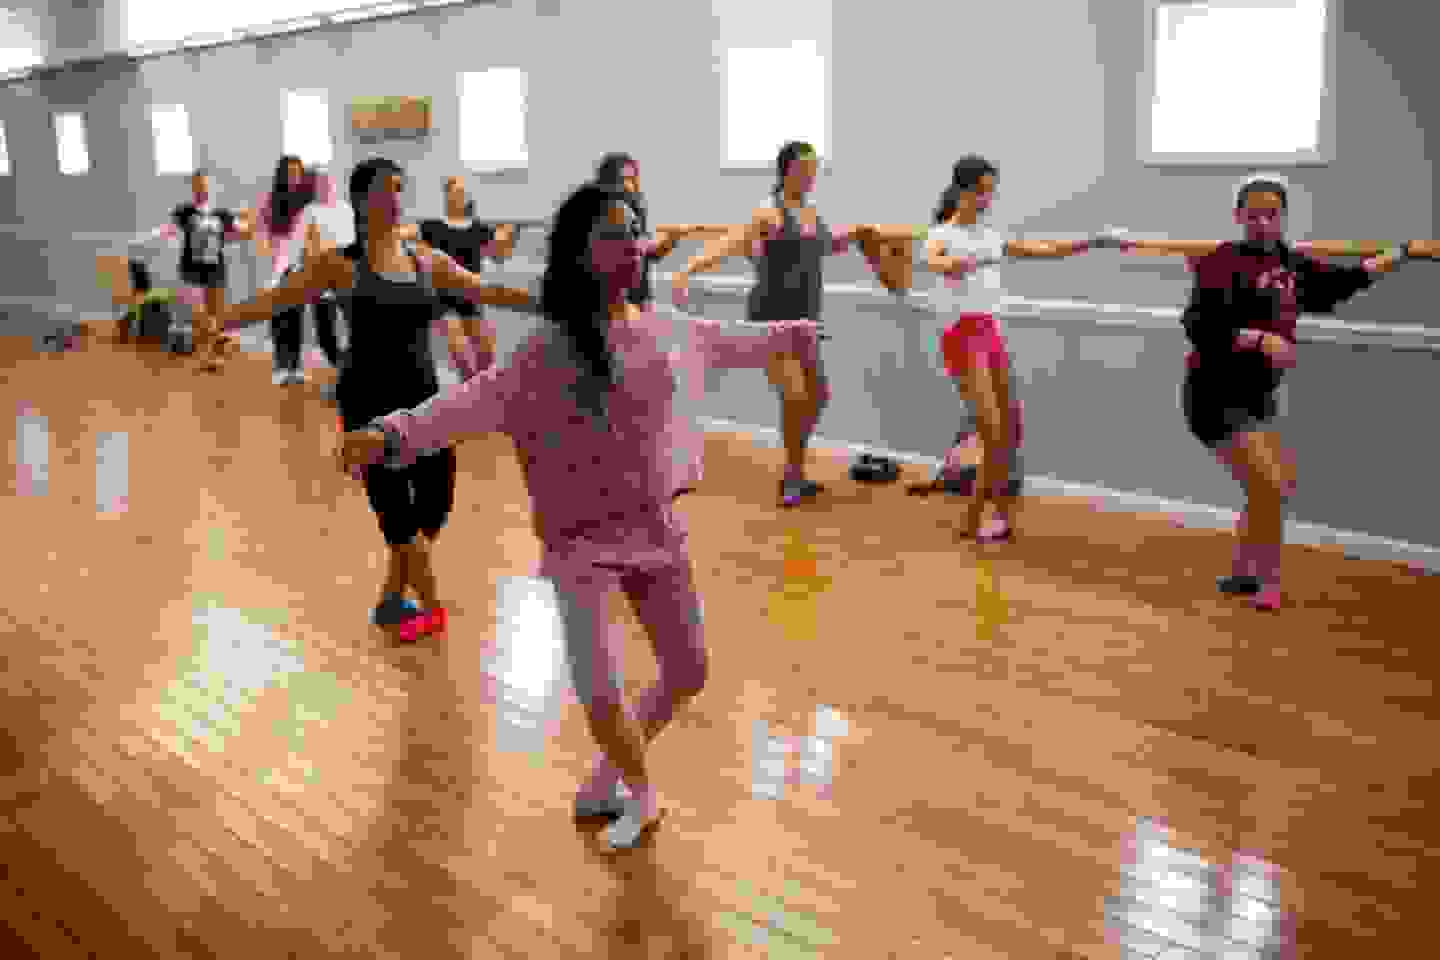 Group of female campers in the dance hall practising ballet